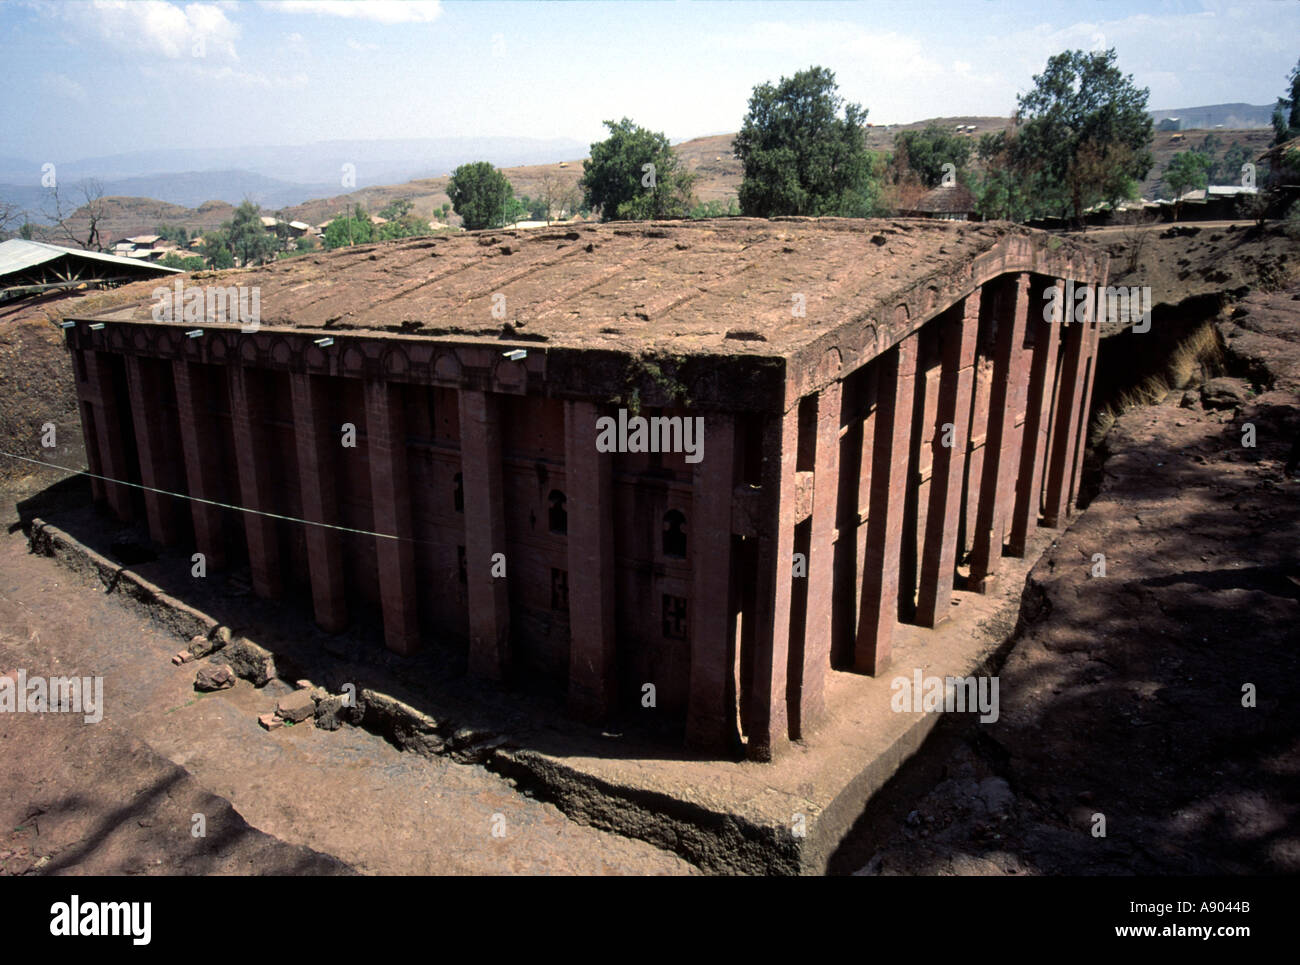 Medhane alem church carved from bedrock lalibela ethiopian